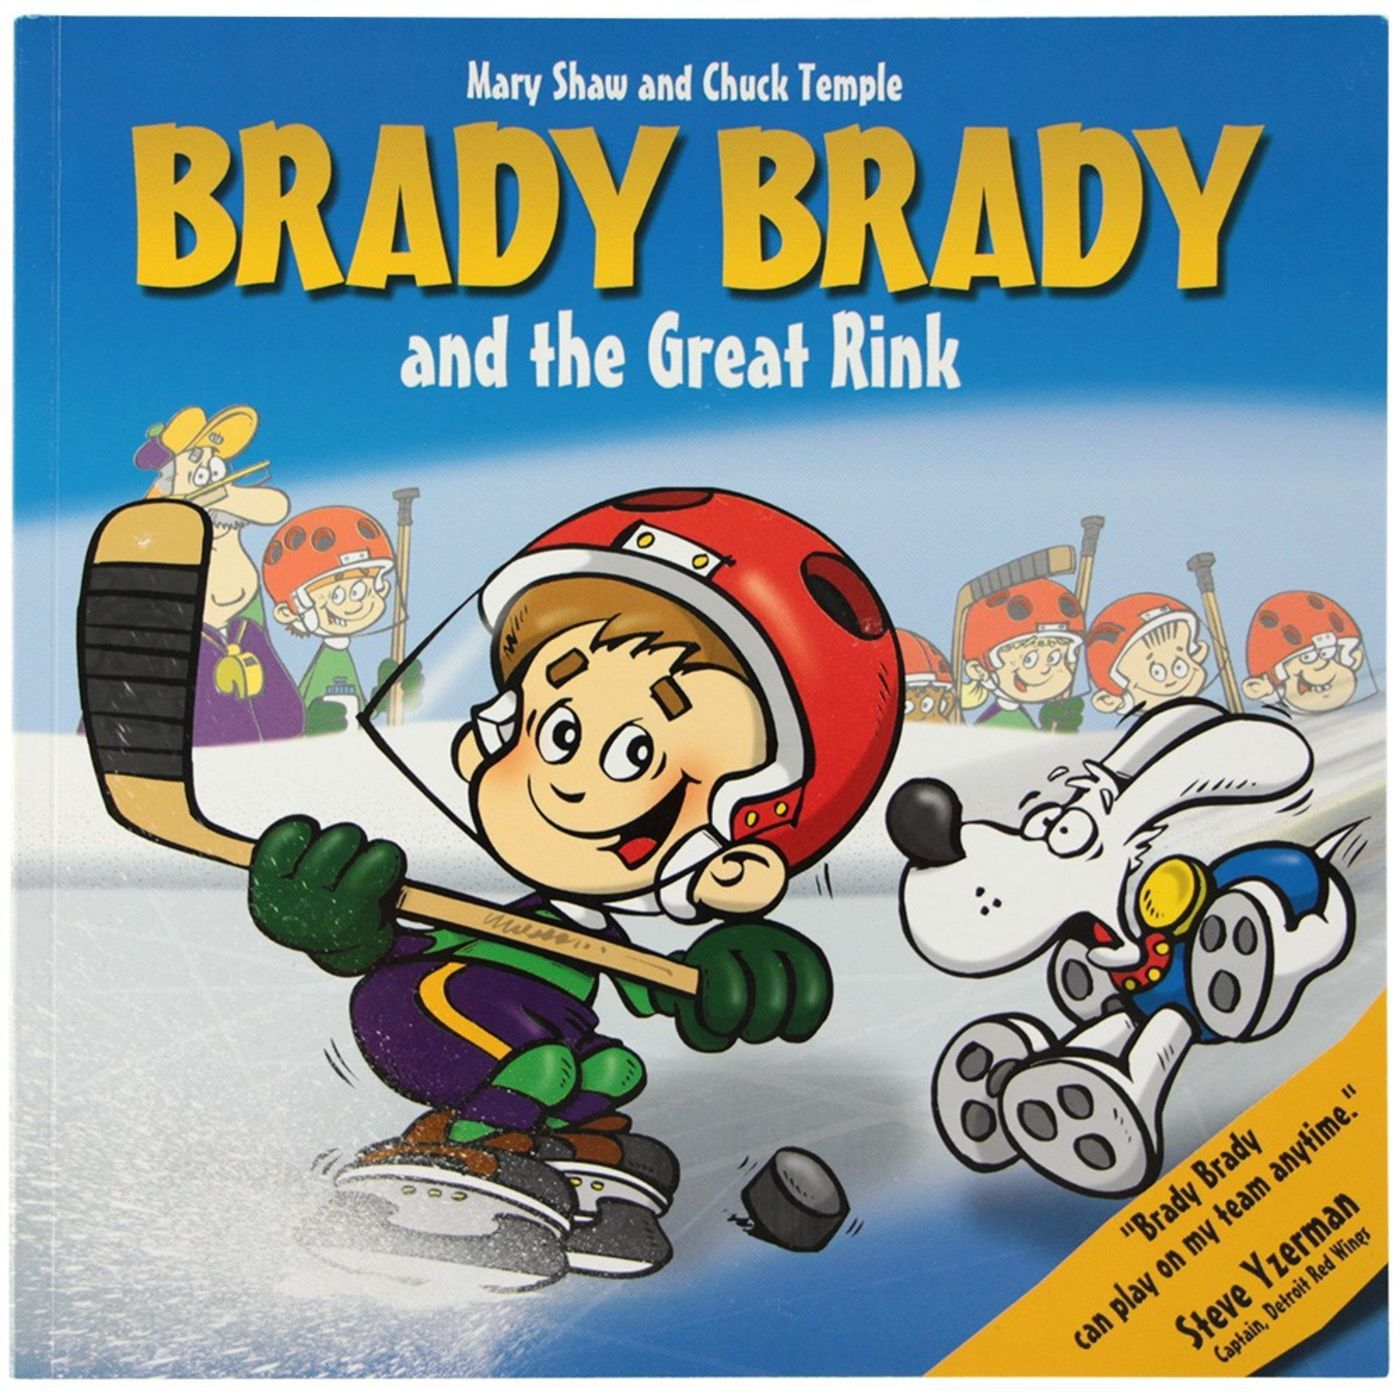 Brady Brady and the year you could build a rink in Vancouver